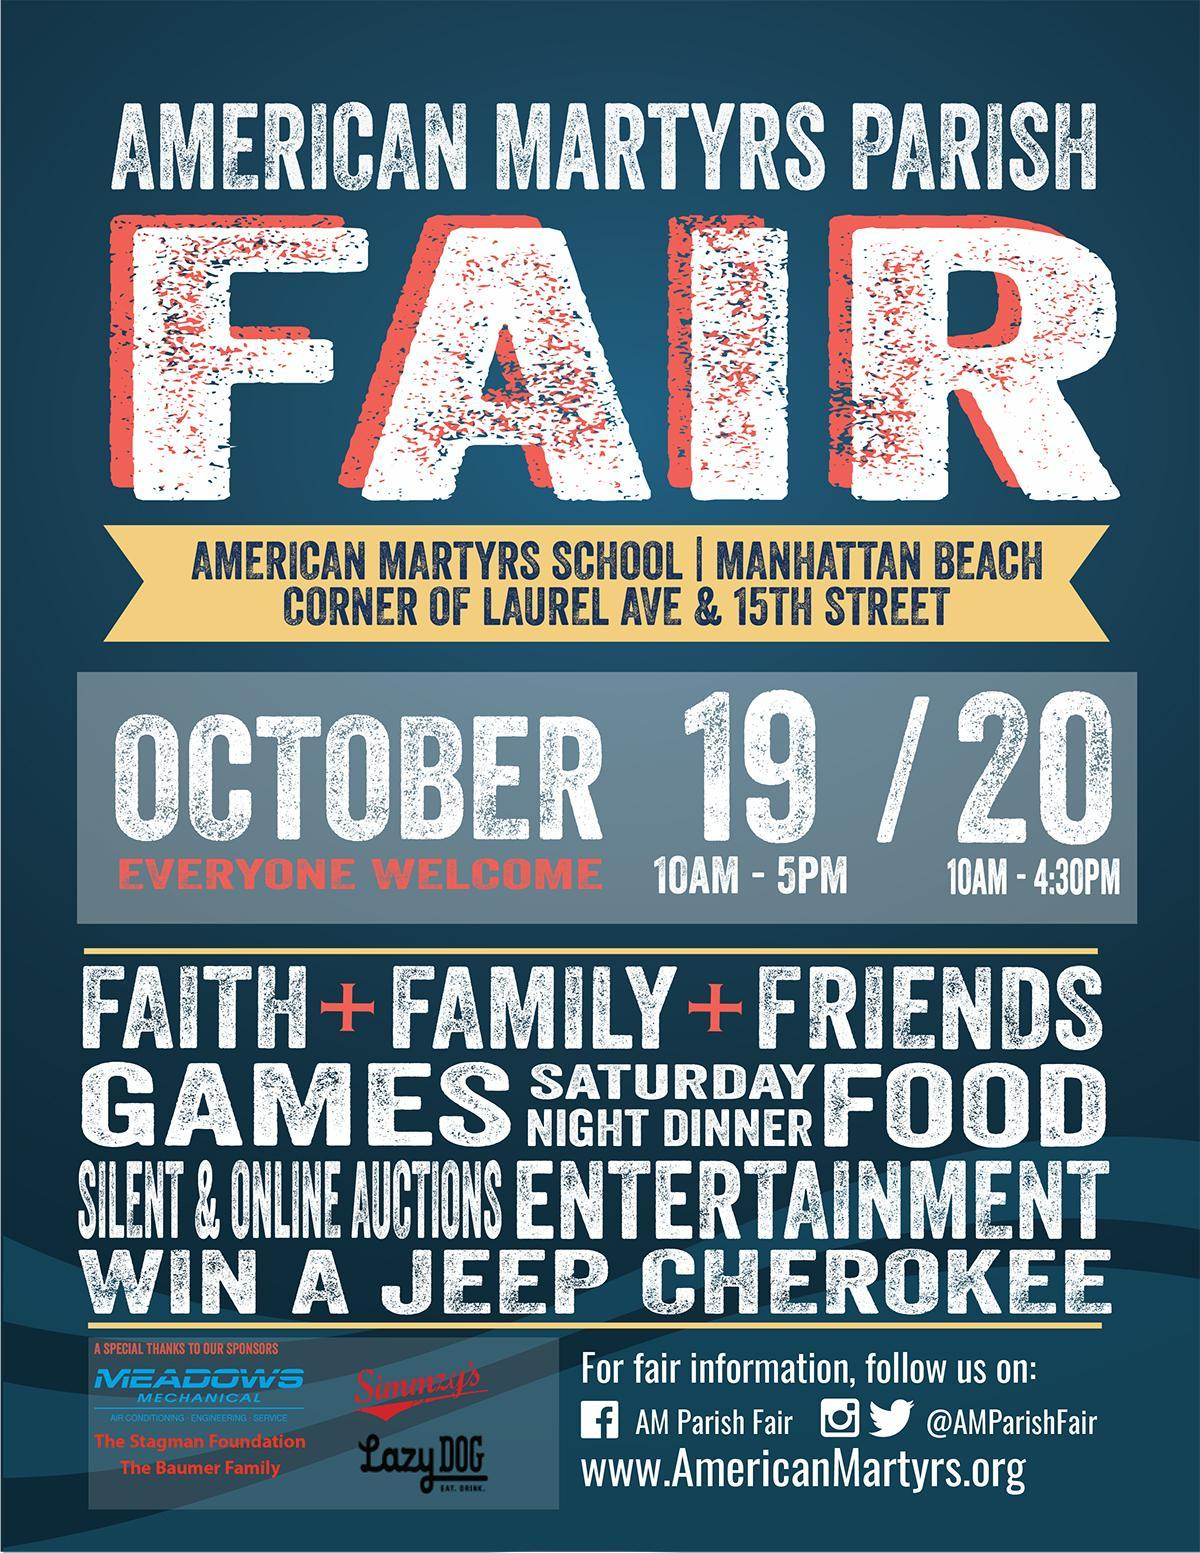 THE 49TH ANNUAL PARISH FAIR IS ALMOST HERE! Image